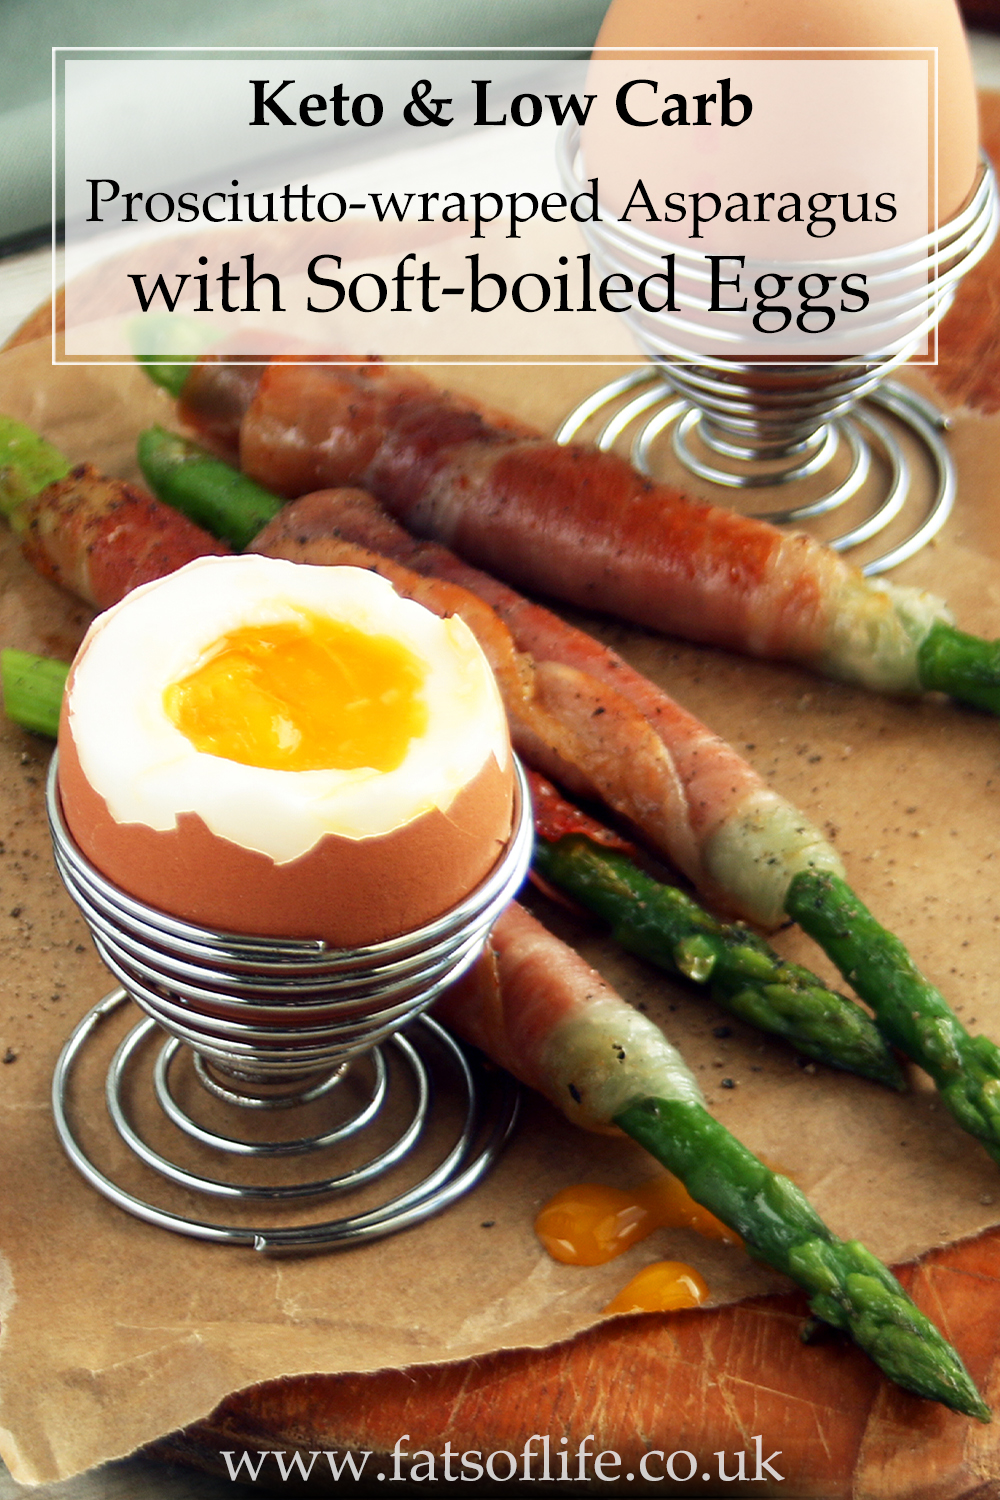 Prosciutto-wrapped Asparagus with Soft-boiled Eggs